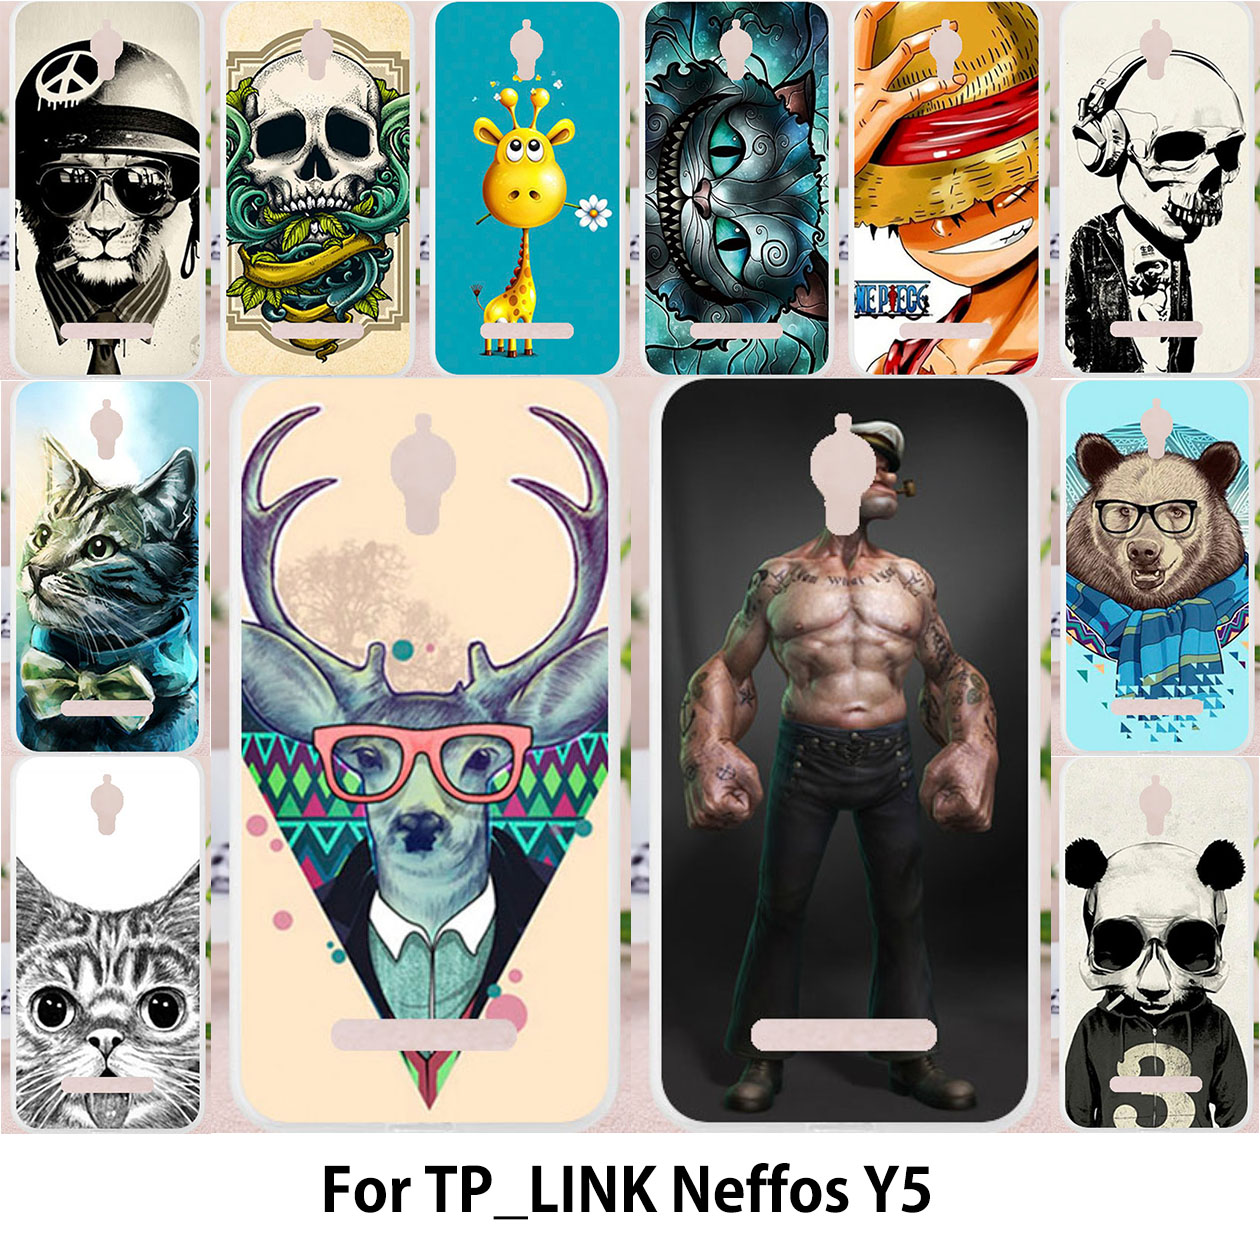 TAOYUNXI For TP-LINK Neffos Y5 case Silicon Cases For TPLINK neffos Y5 TP LINK TP802A Cover Animal Panda Cat Tiger Owl Patterned